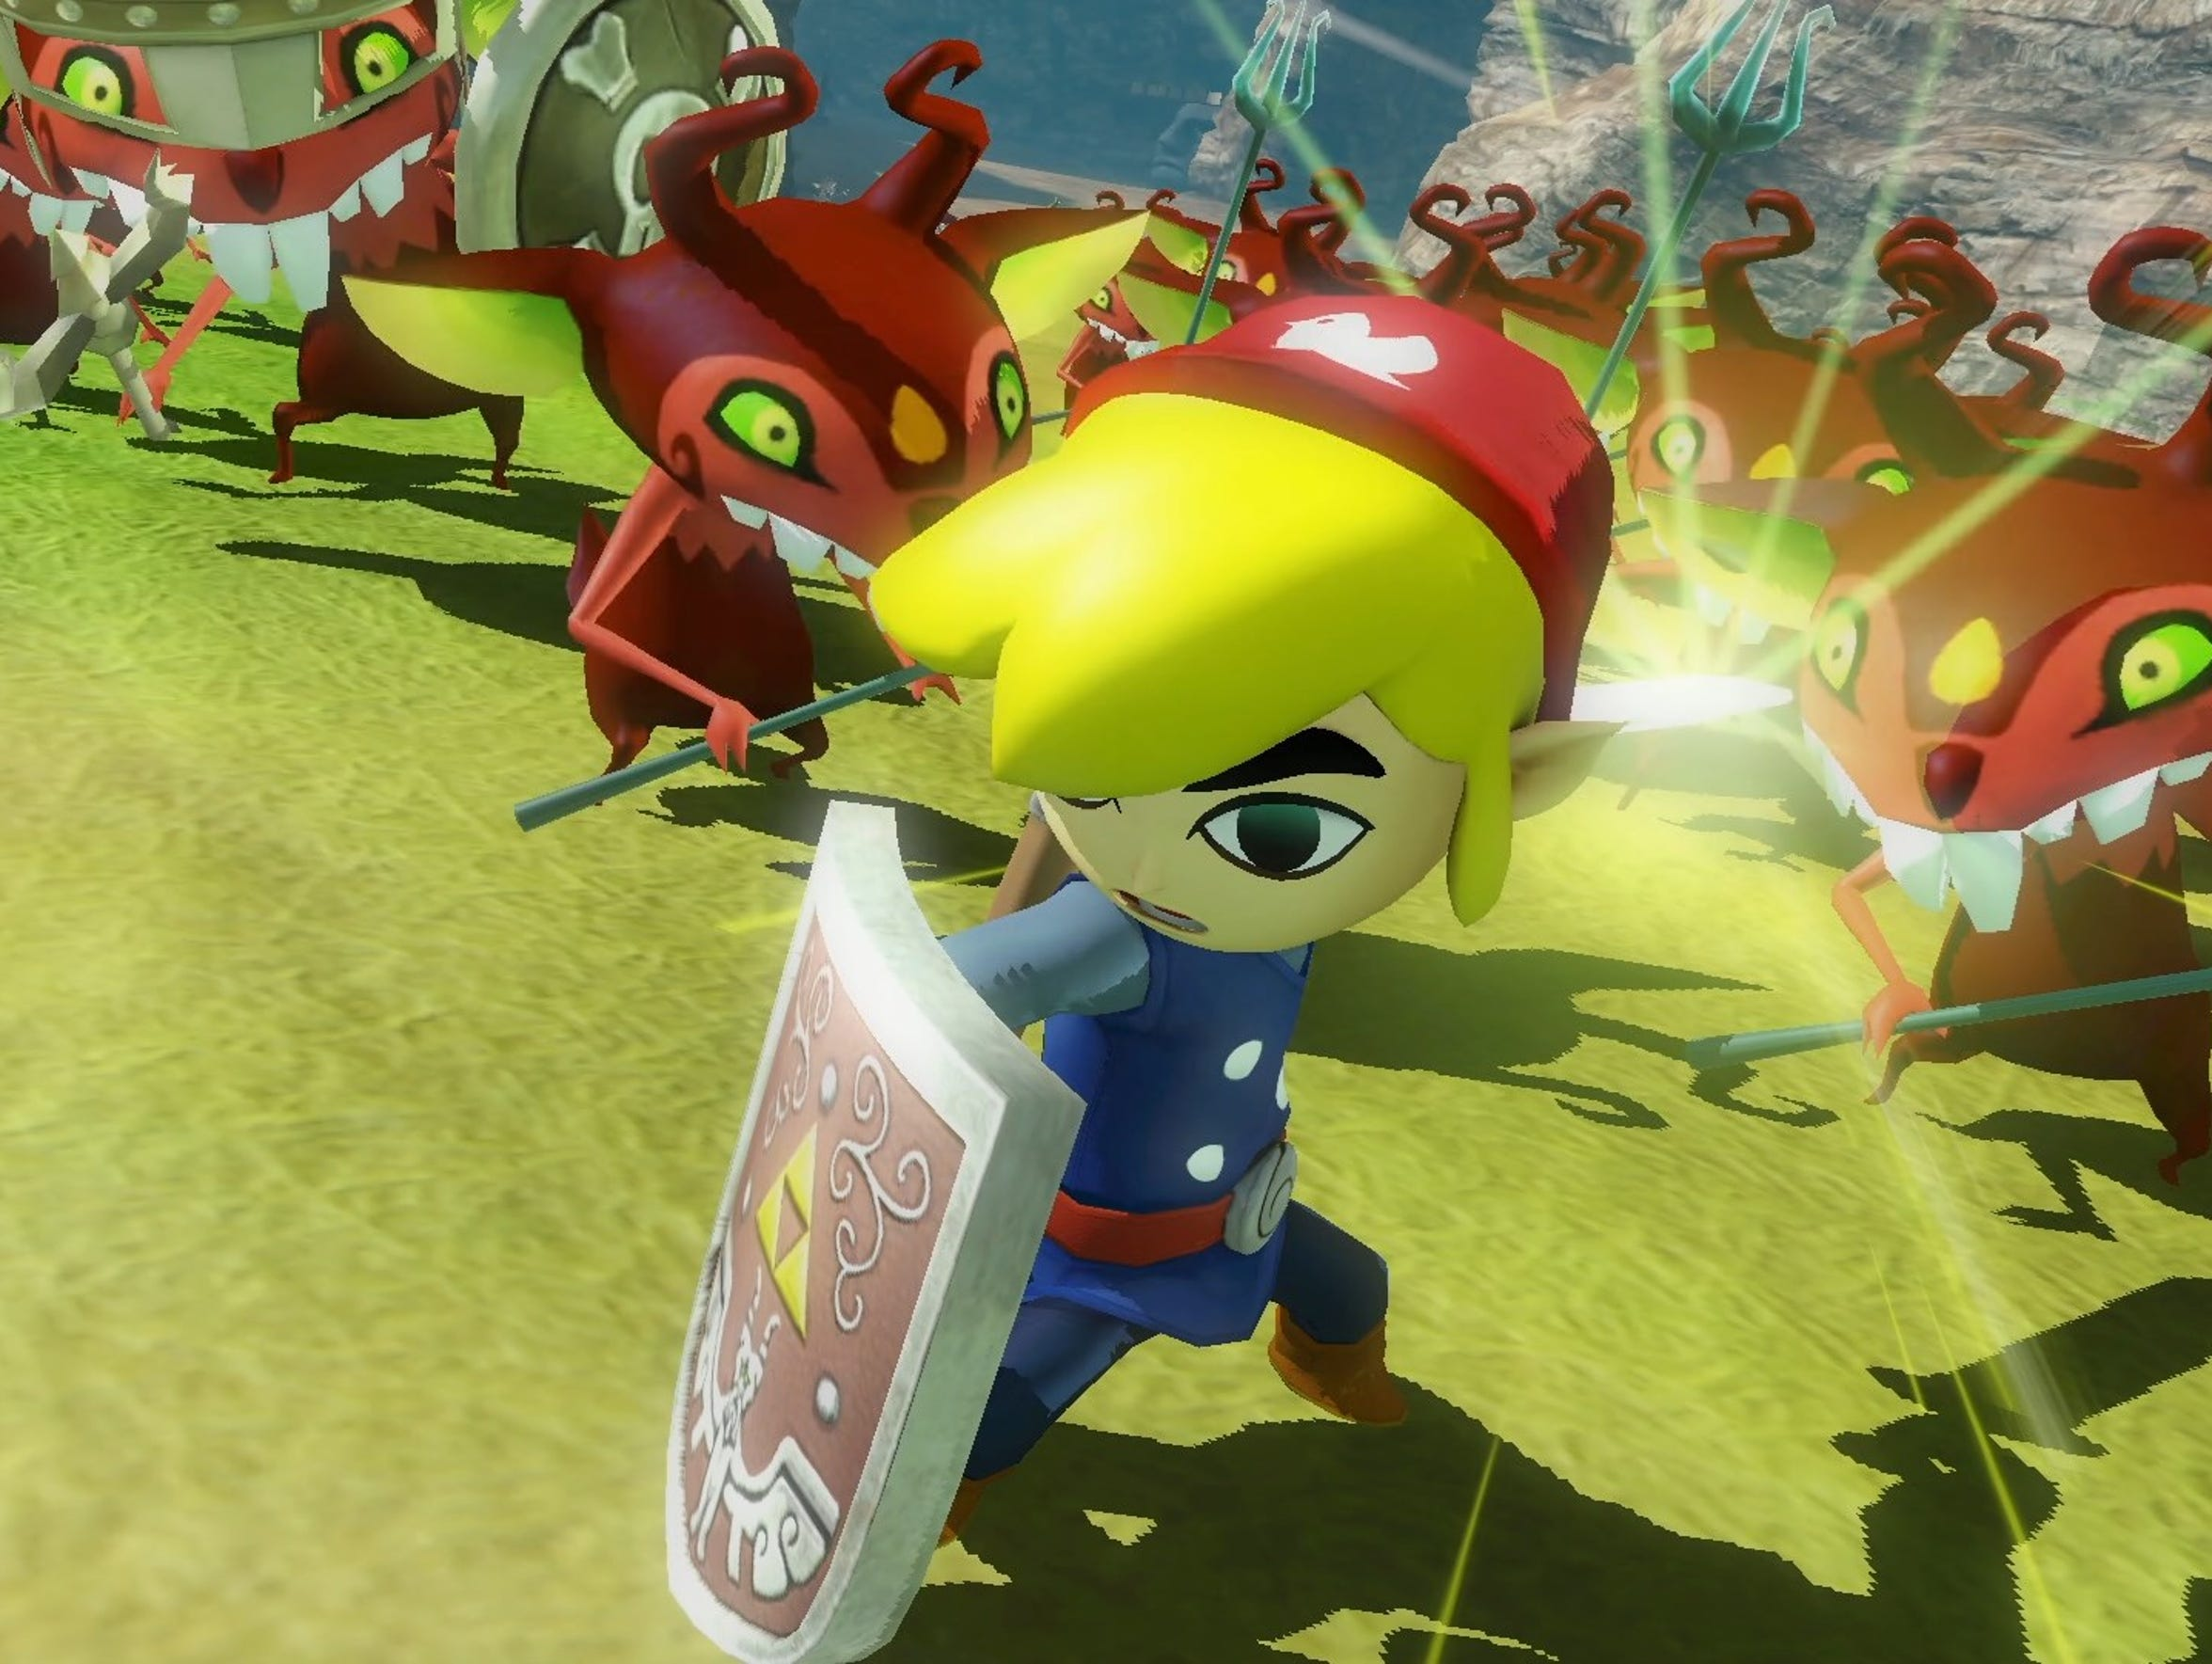 Toon Link in Hyrule Warriors Definitive Edition for